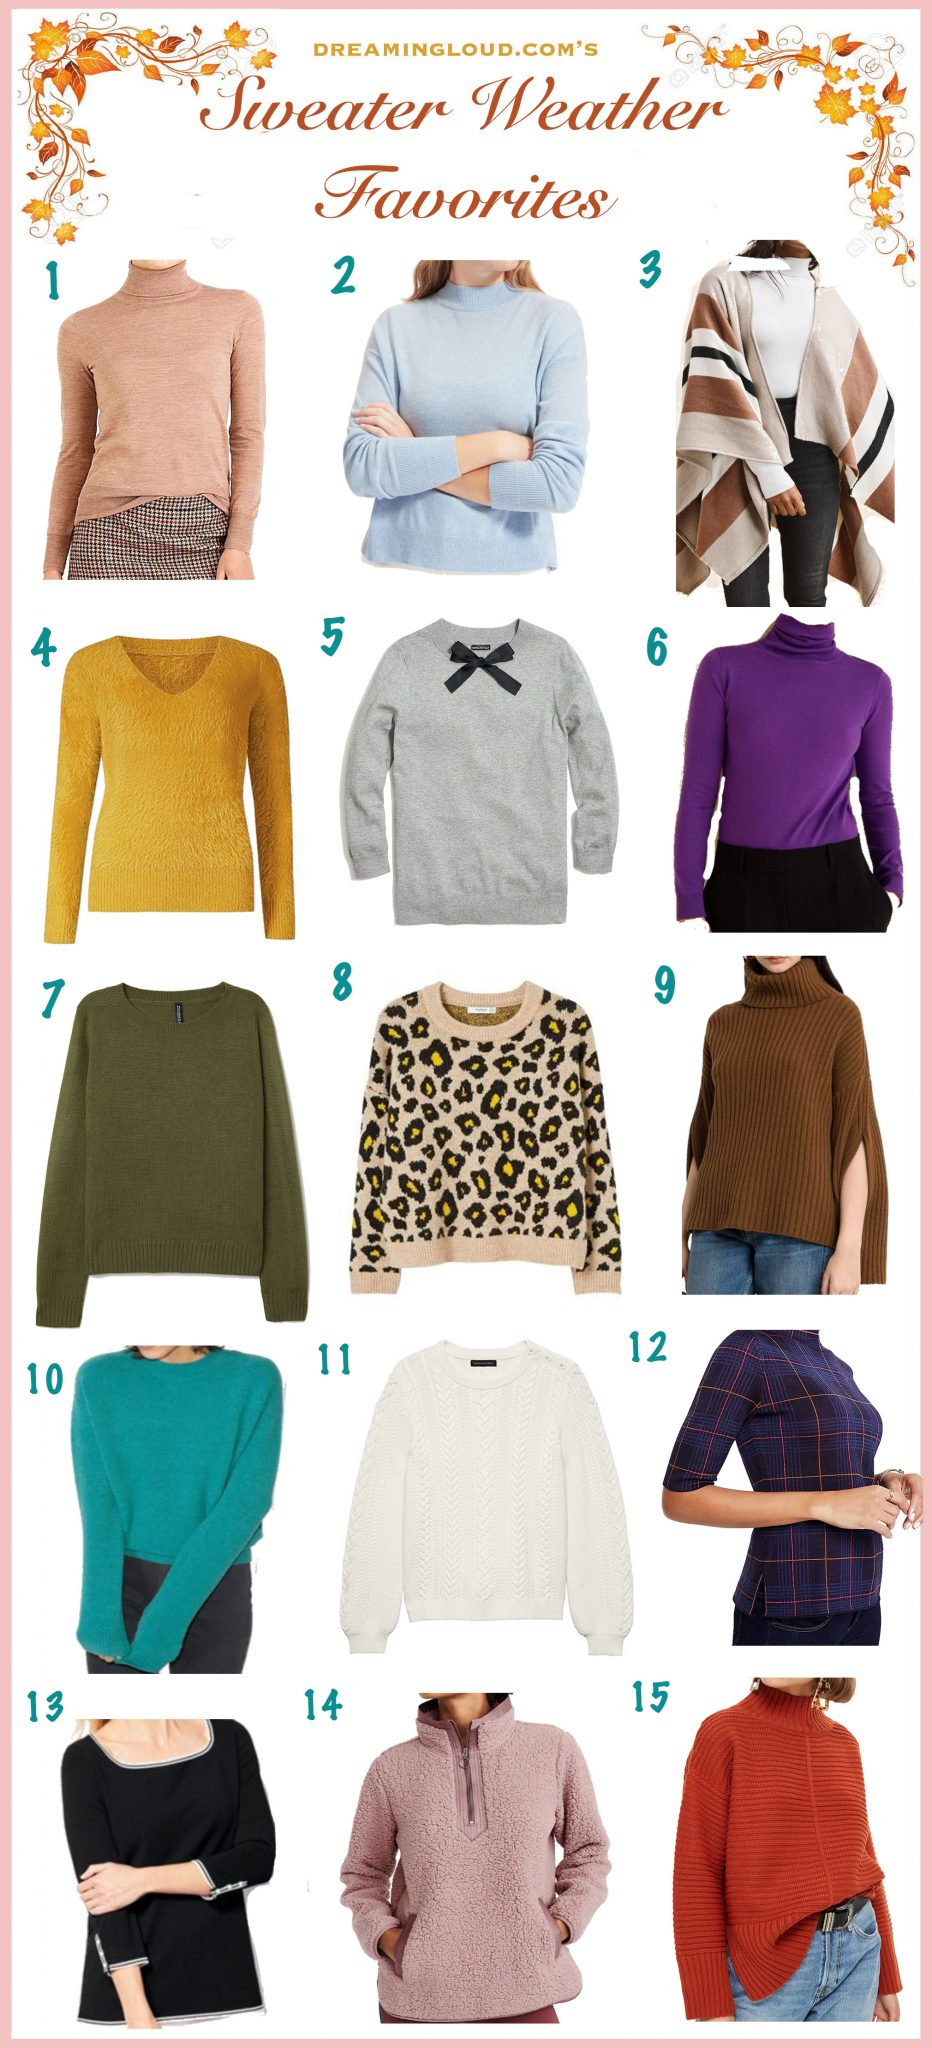 15 Cute Fall Sweaters Perfect for the Season featured by popular US modest fashion blogger, Dreaming Loud